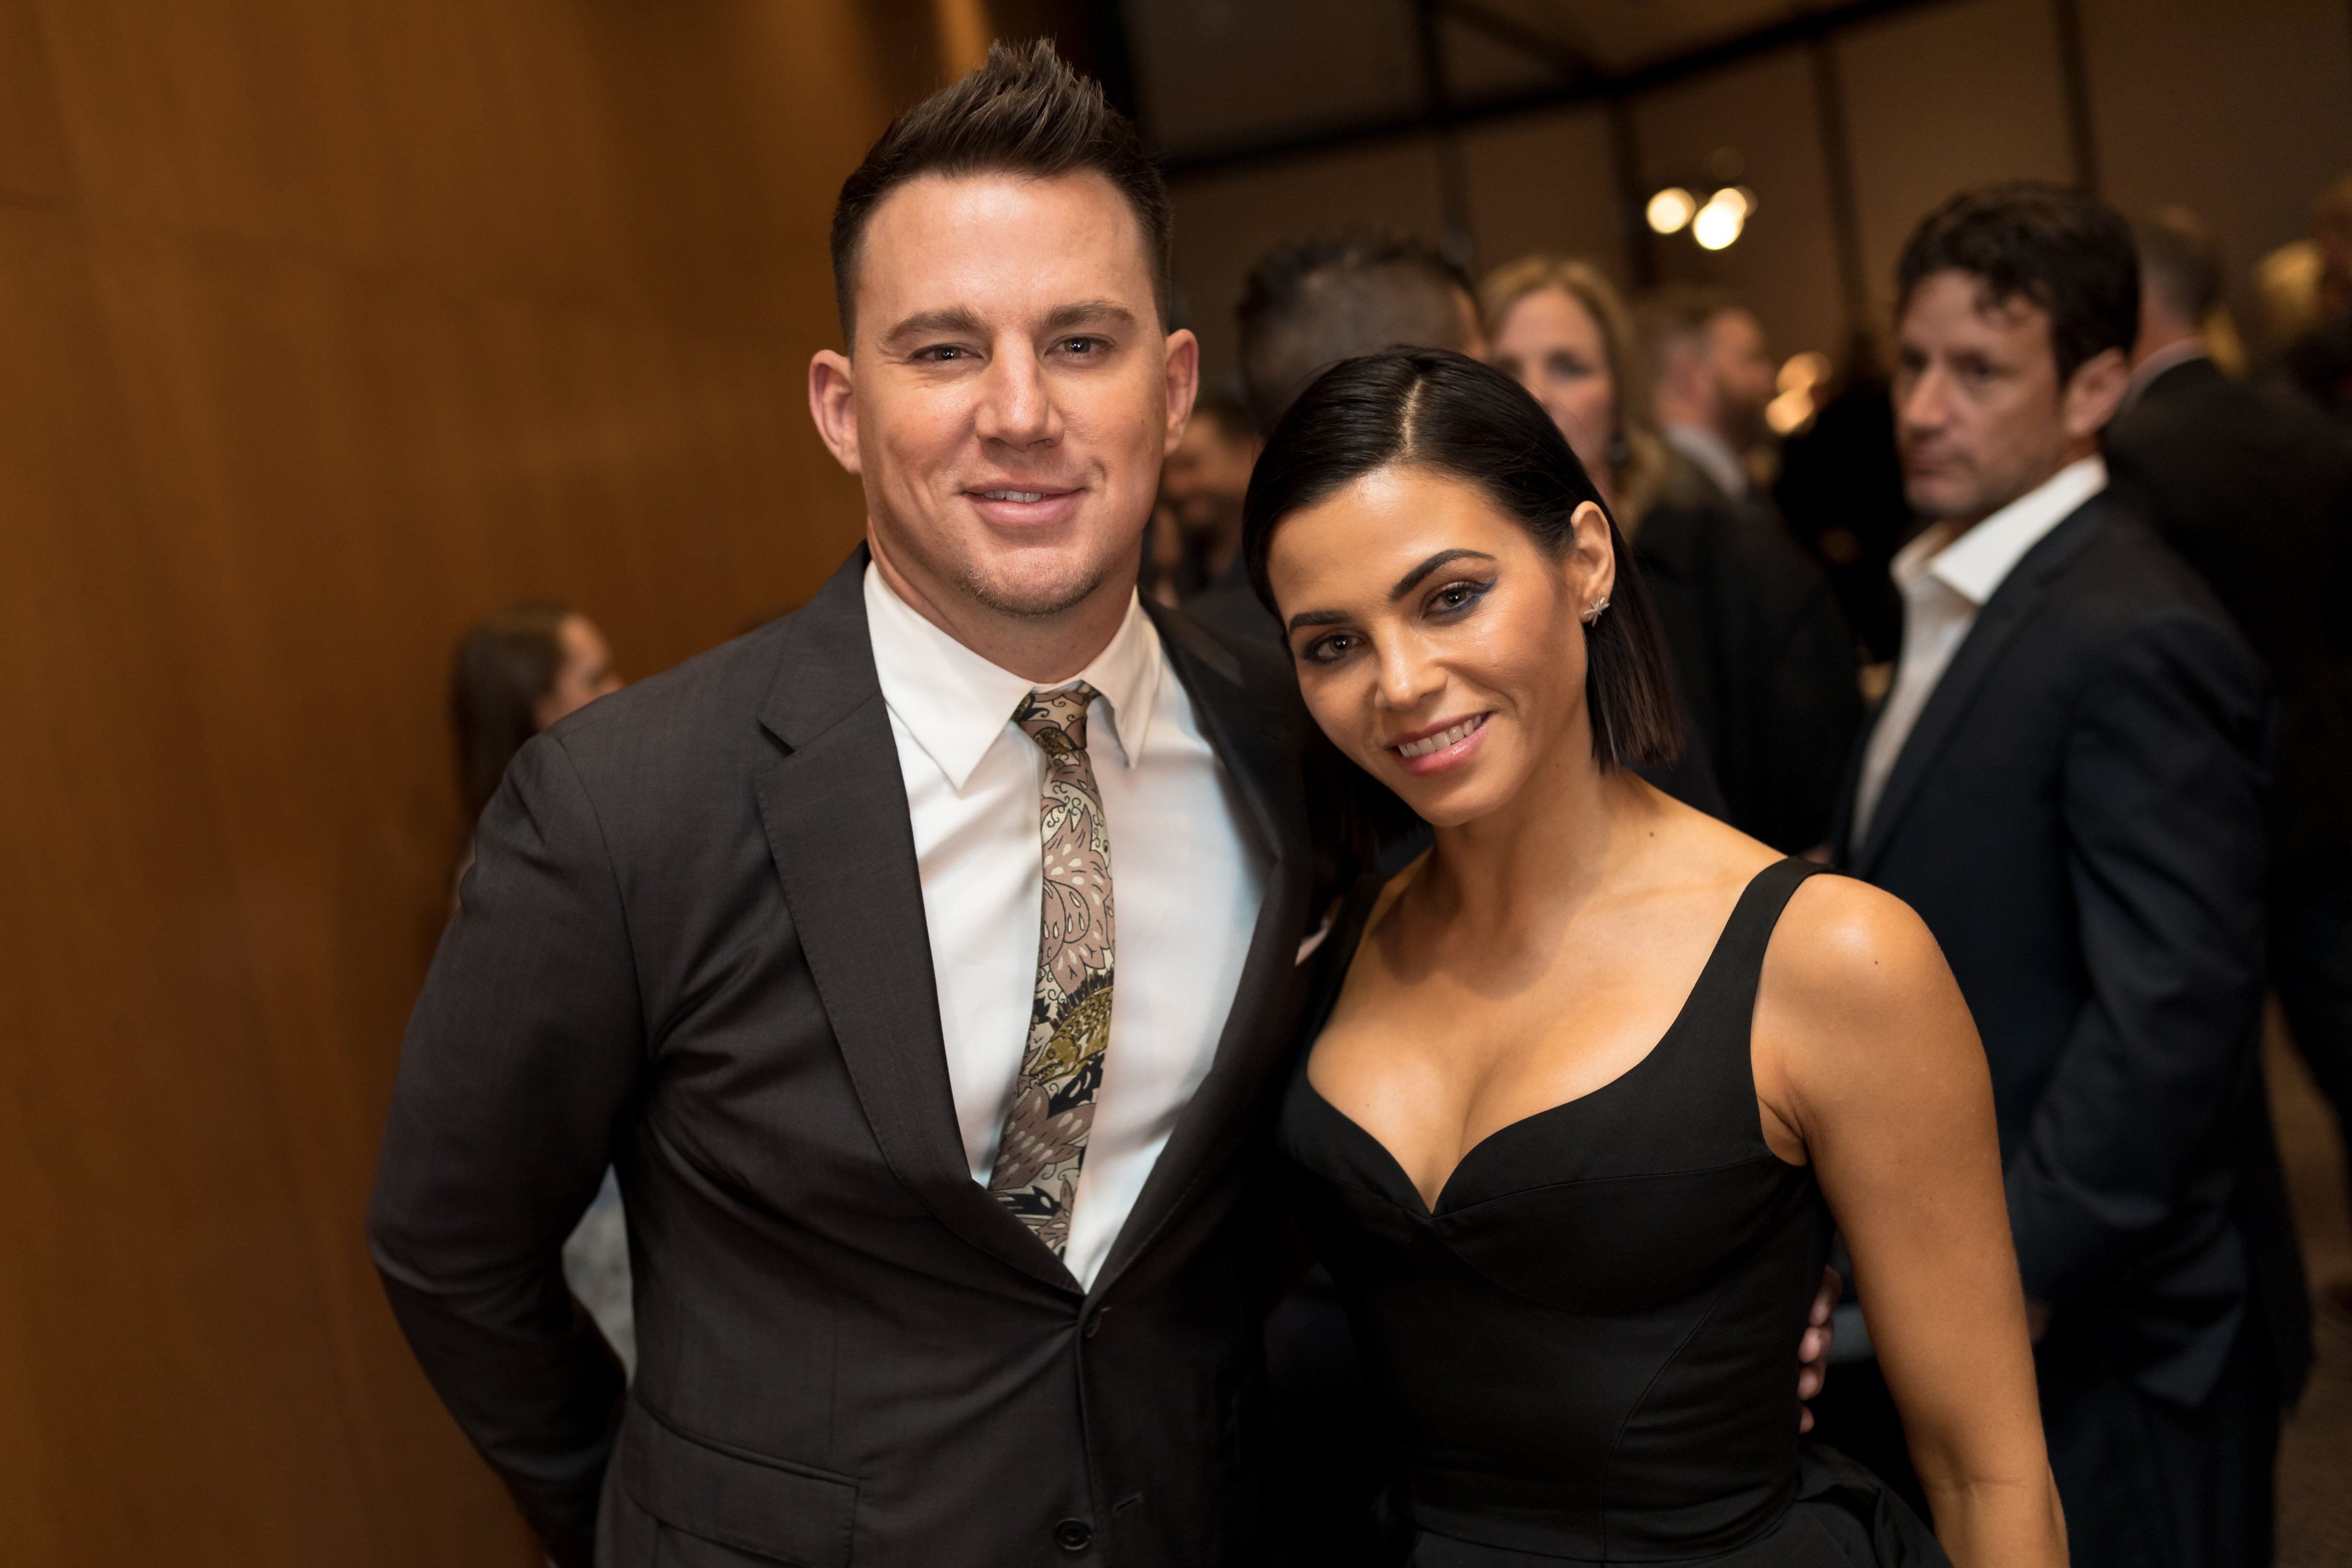 Channing Tatum and Jenna Dewan Tatum attend the after party at The Directors Guild Of America on November 6, 2017, in Los Angeles, California. | Source: Getty Images.